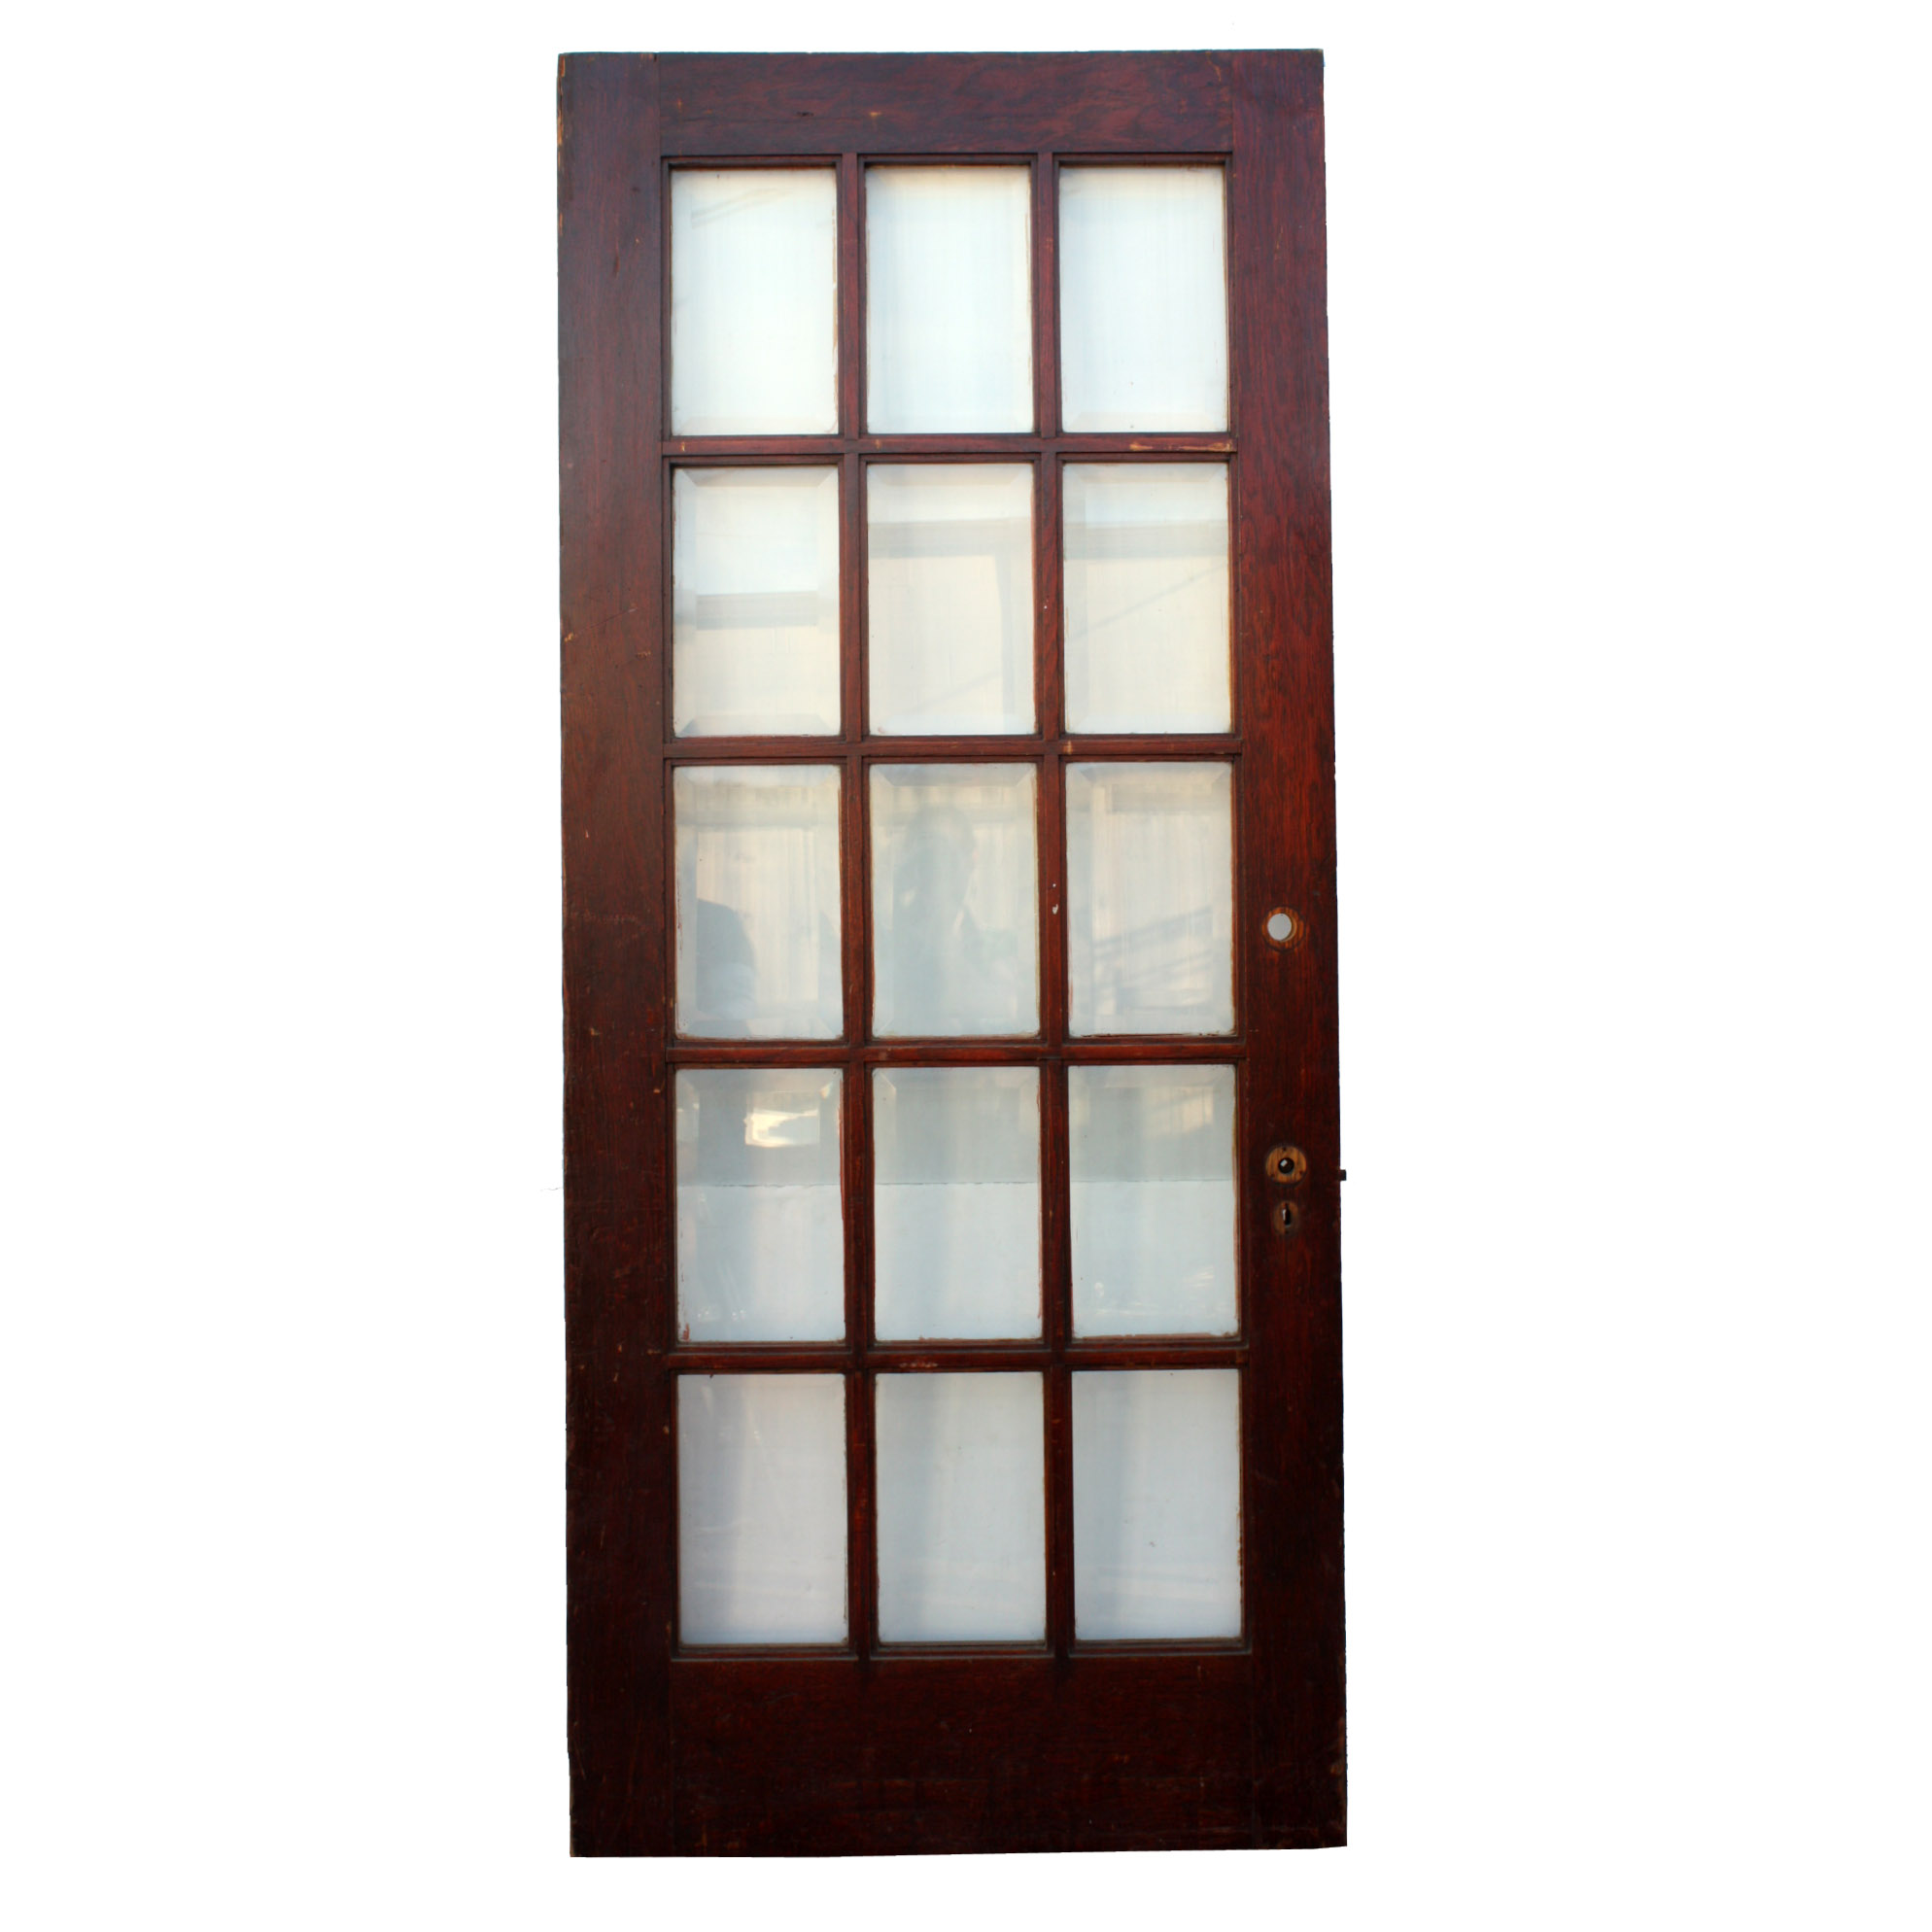 Salvaged 34 5 8 Exterior Oak Door With Beveled Glass NED86 For Sale Antiqu